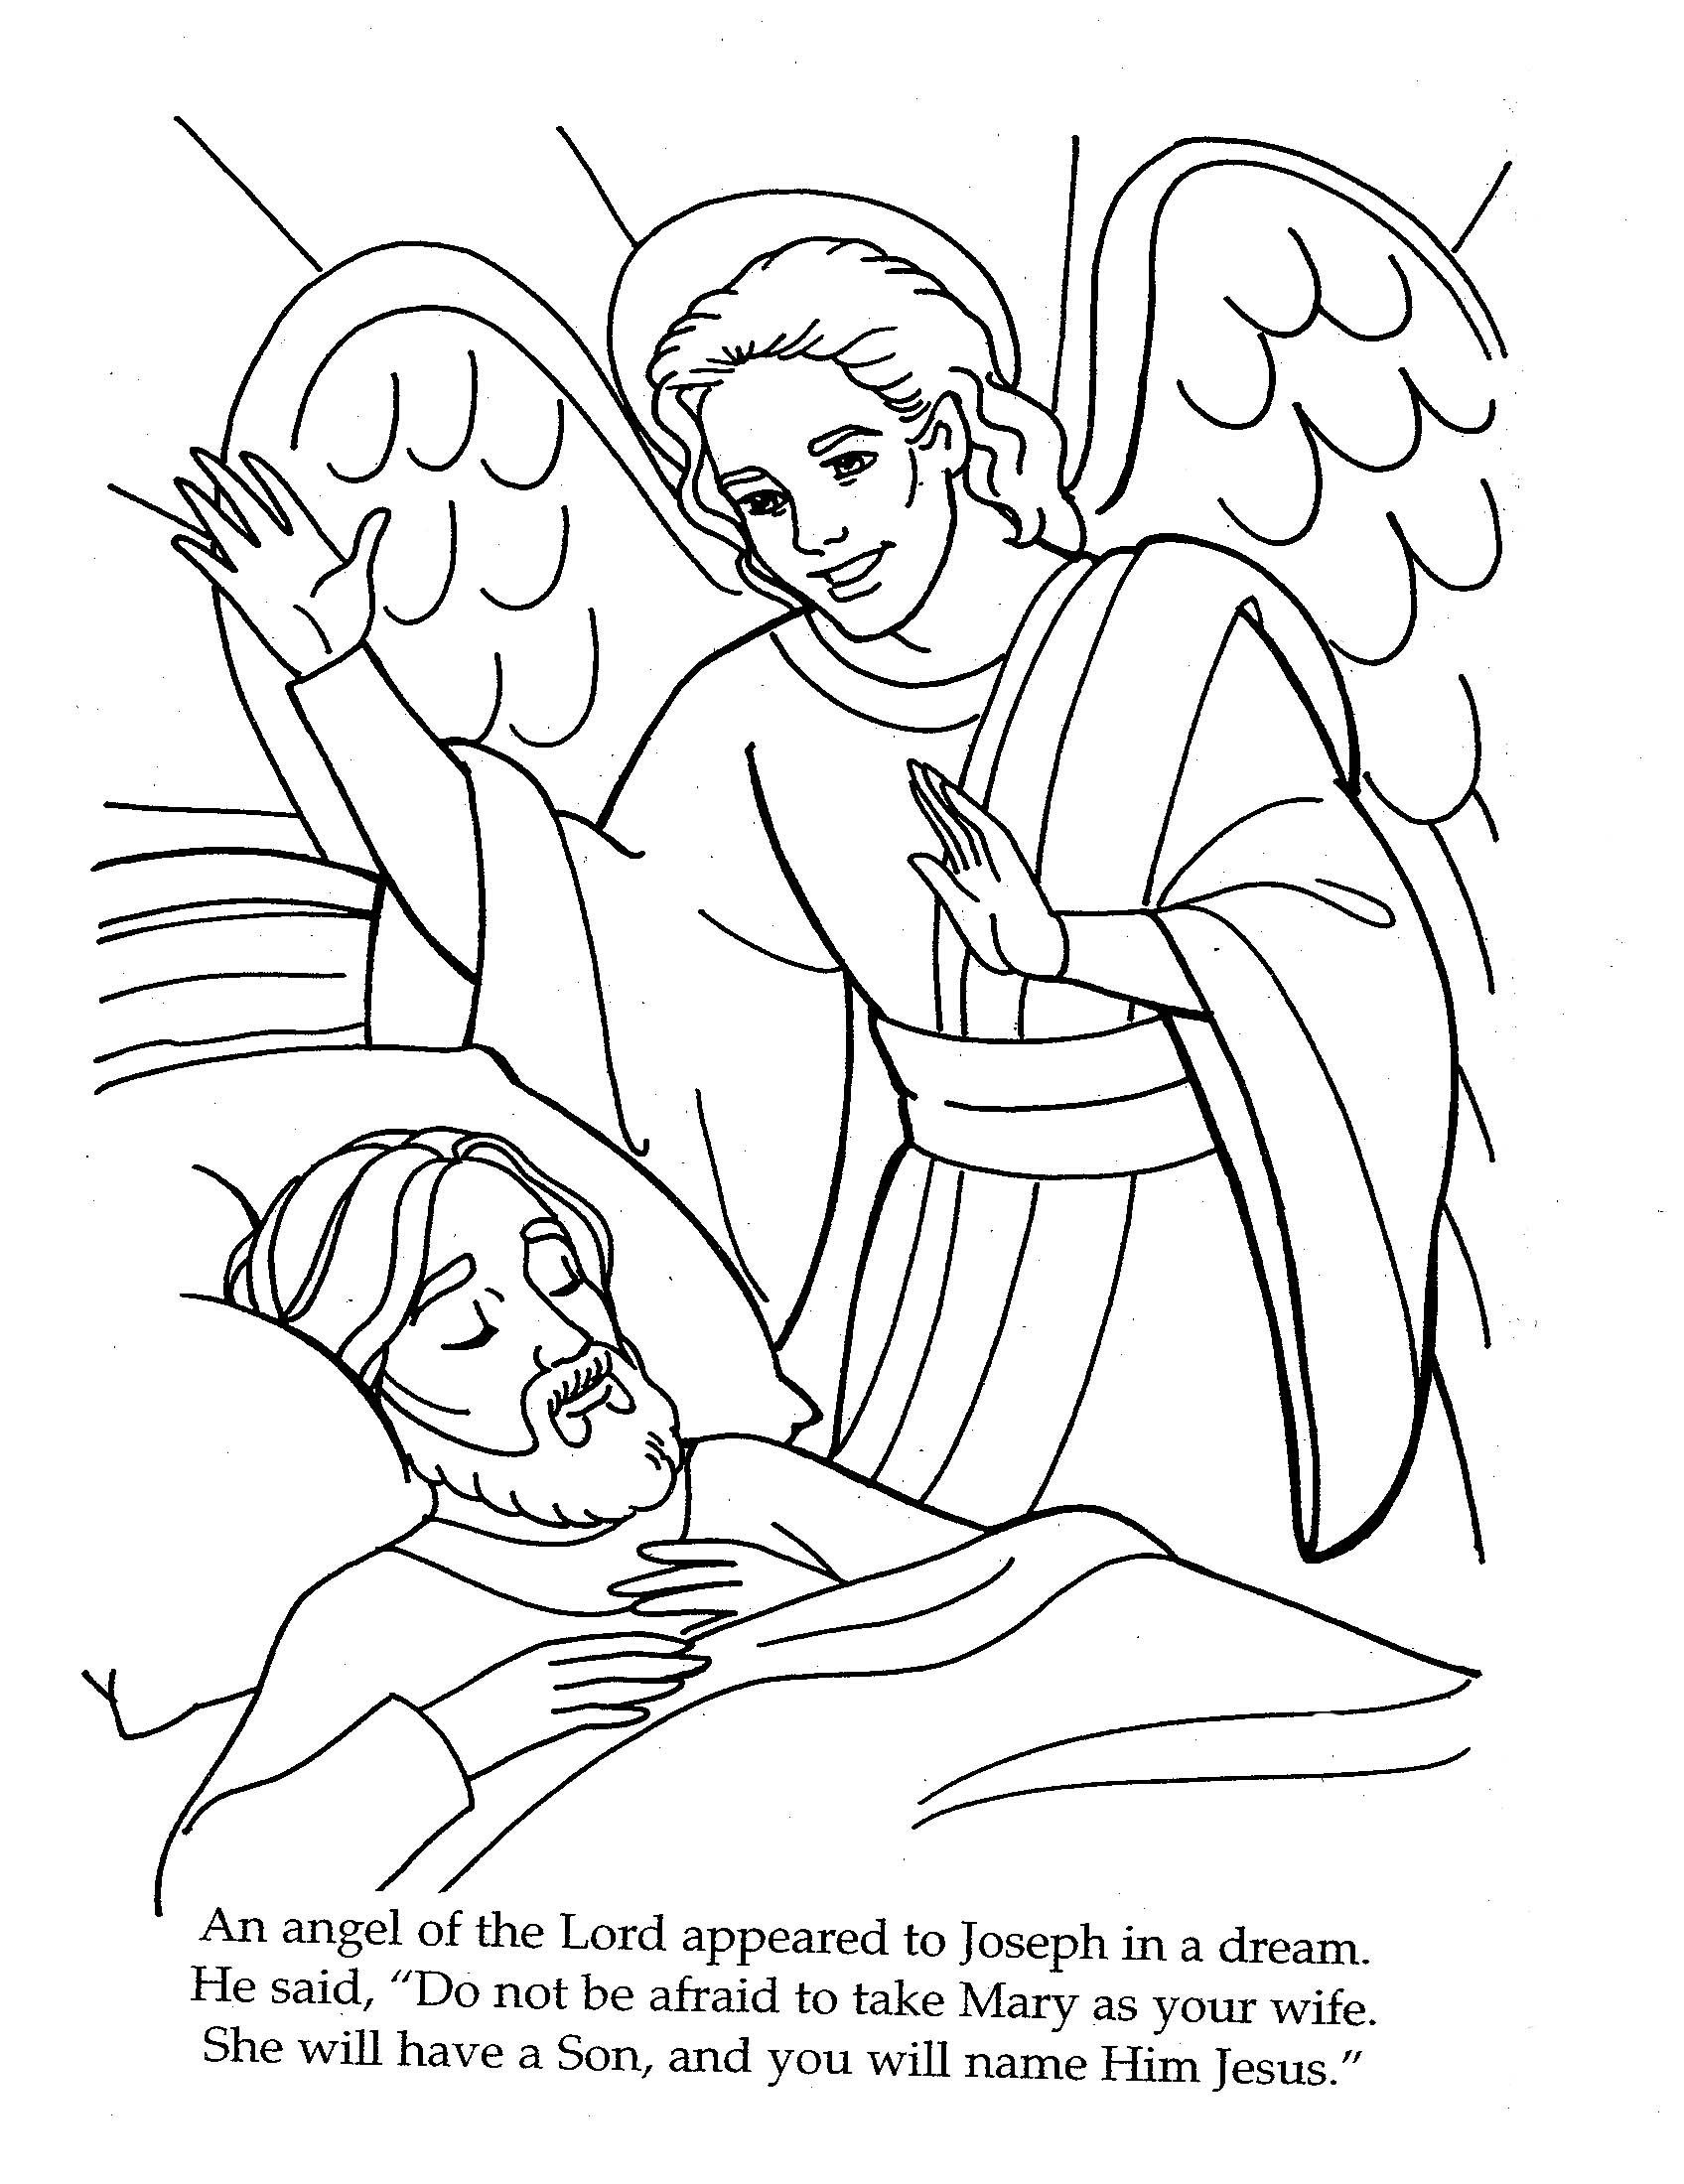 Mary Joseph Jesus Coloring Pages At Getcolorings